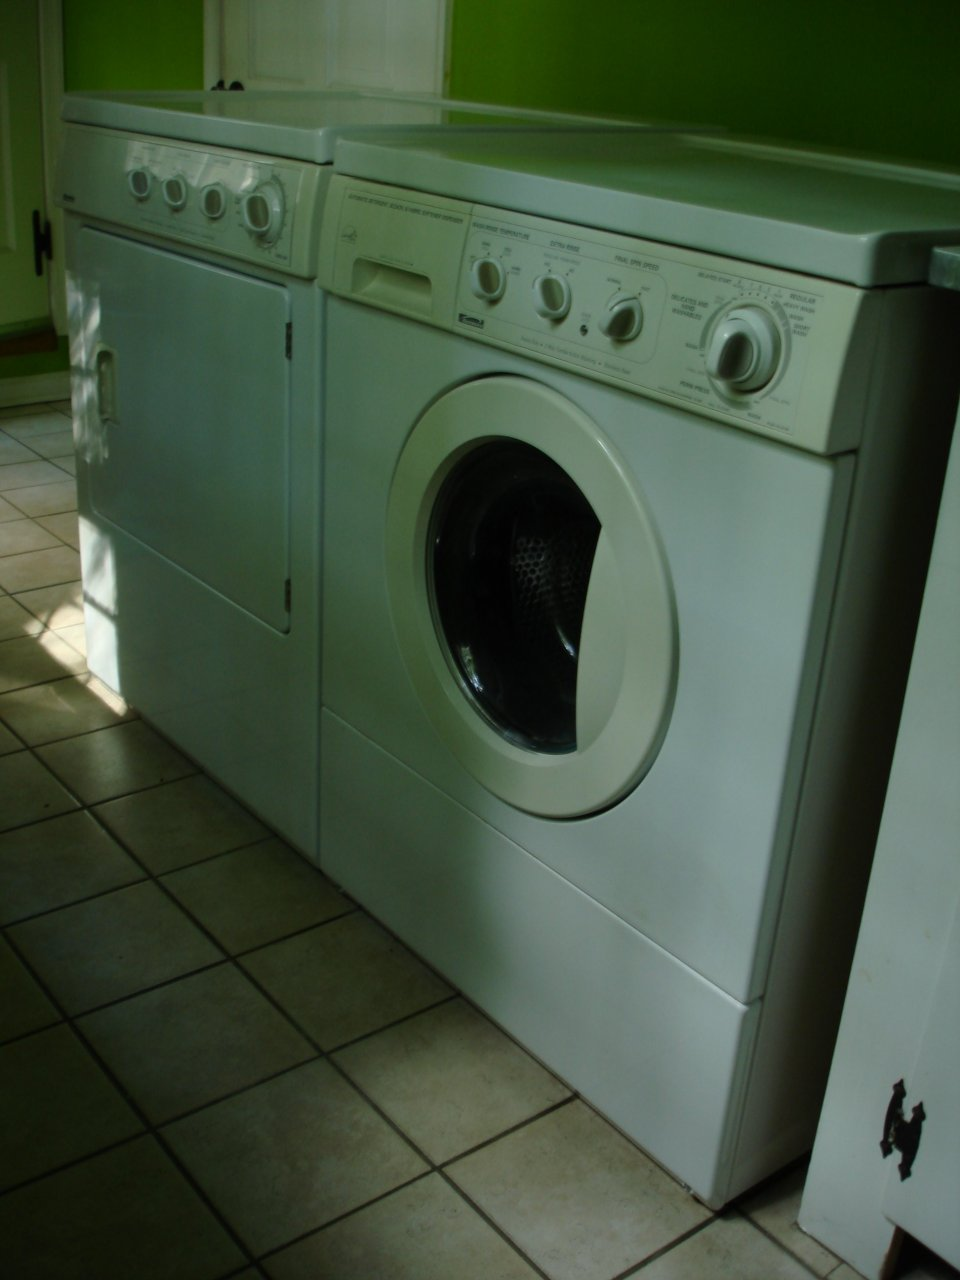 Whirlpool/Kenmore Washer Repair Videos | DIY Forums